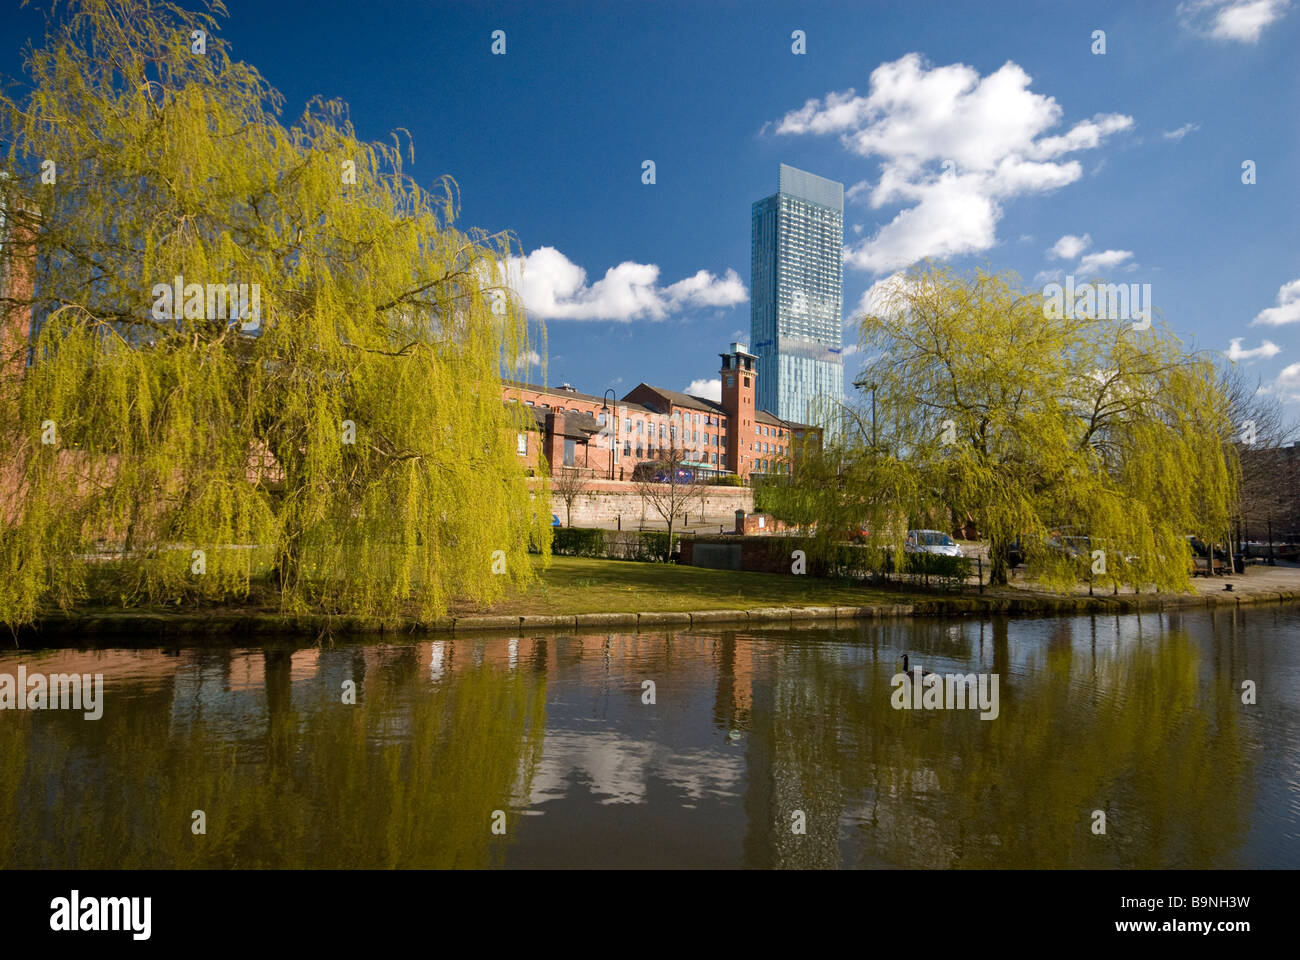 Castlefield District Manchester - Stock Image